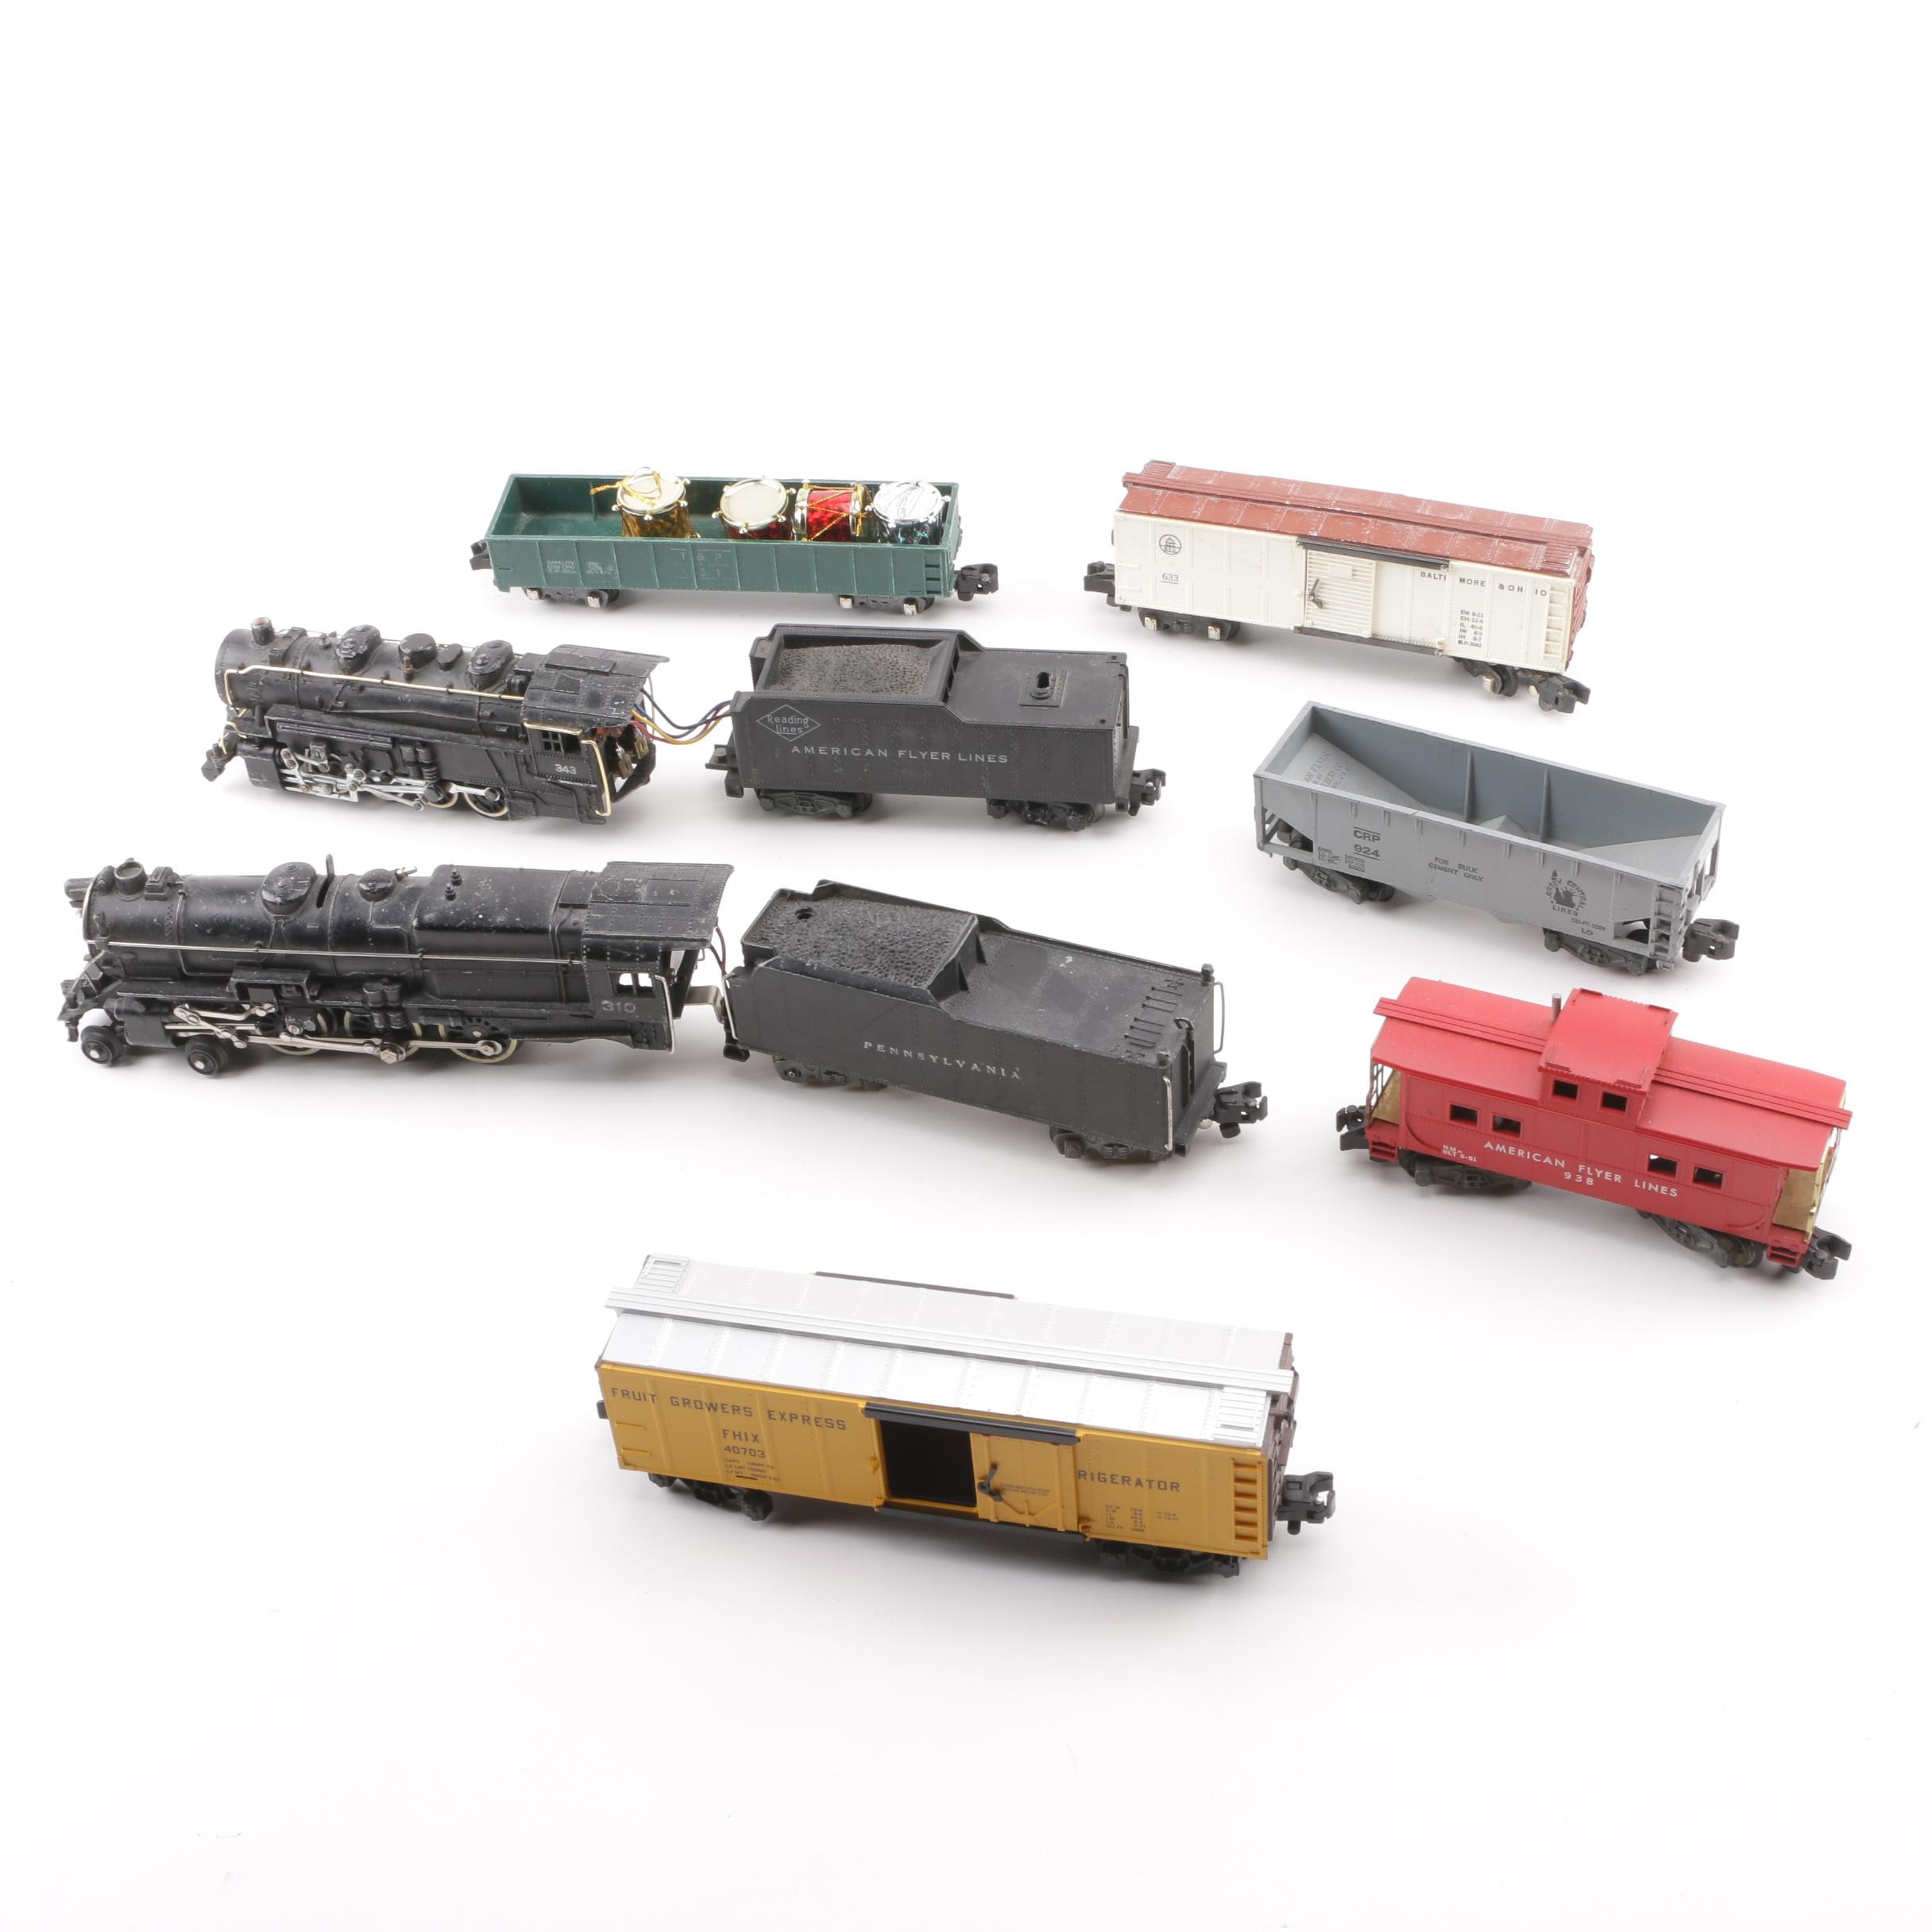 American Flyer S-Scale Train Cars and Locomotives